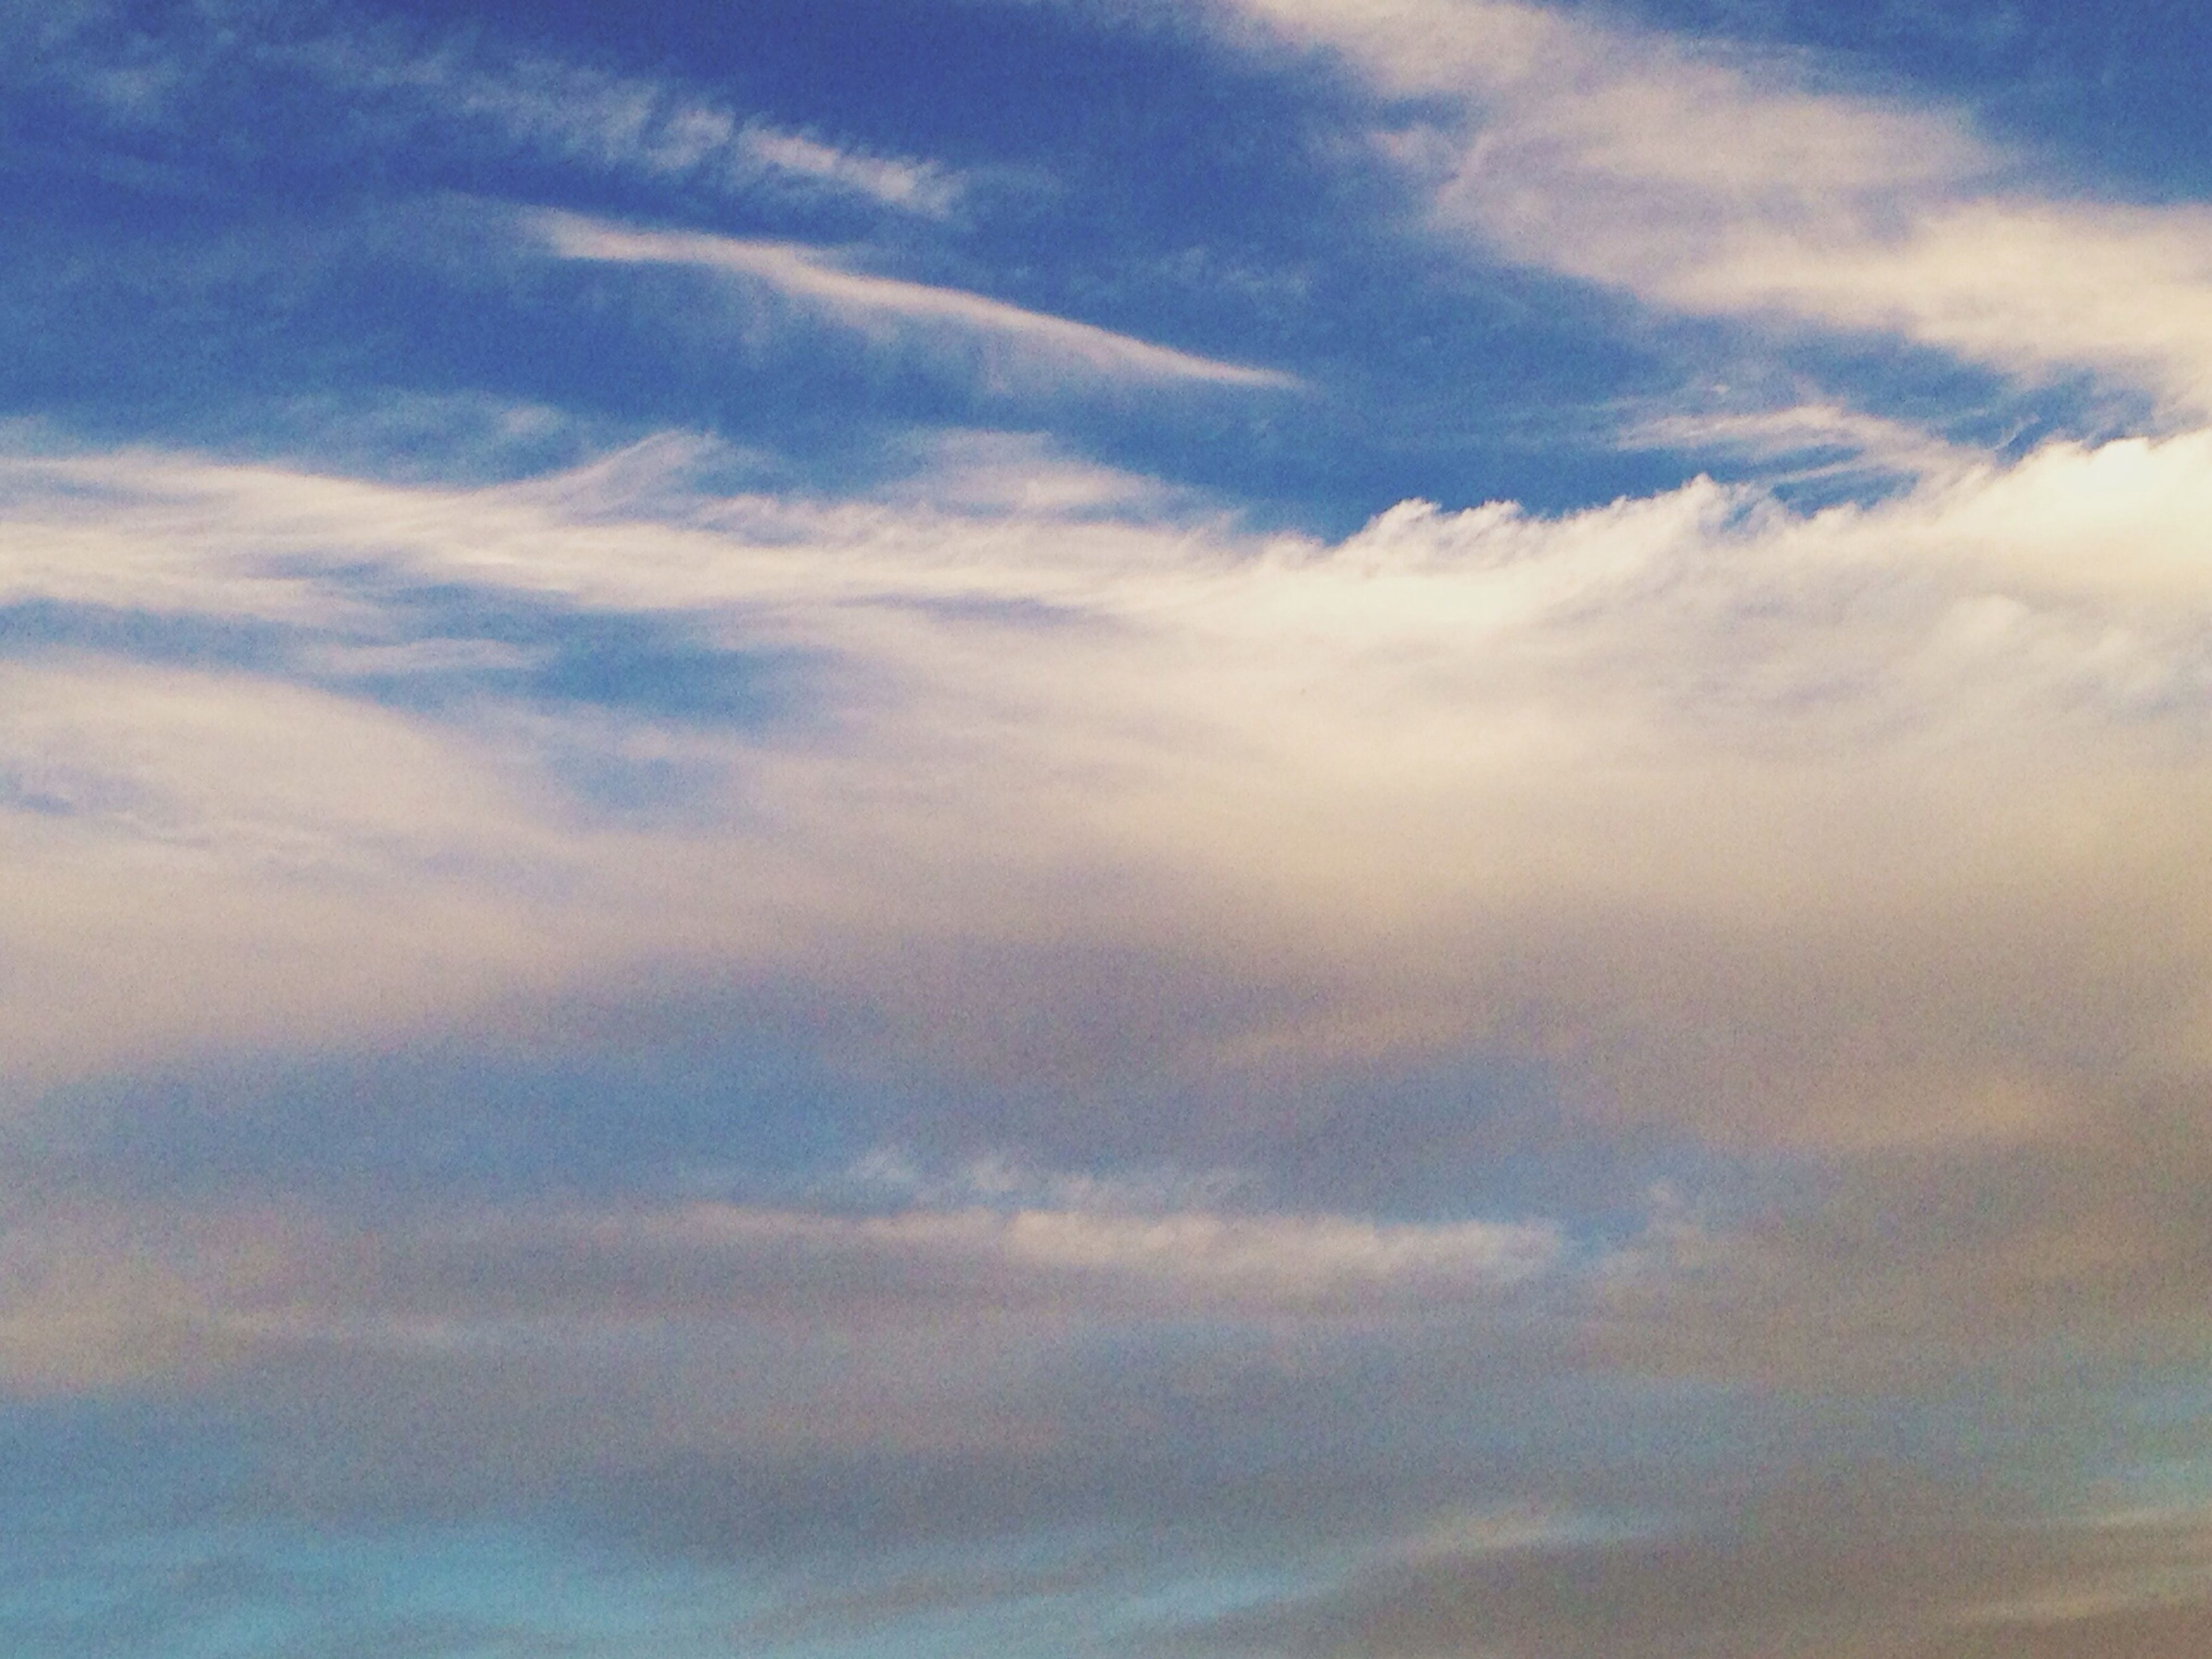 sky, cloud - sky, low angle view, tranquility, beauty in nature, scenics, cloudy, sky only, tranquil scene, nature, cloud, backgrounds, cloudscape, blue, idyllic, full frame, outdoors, no people, day, weather